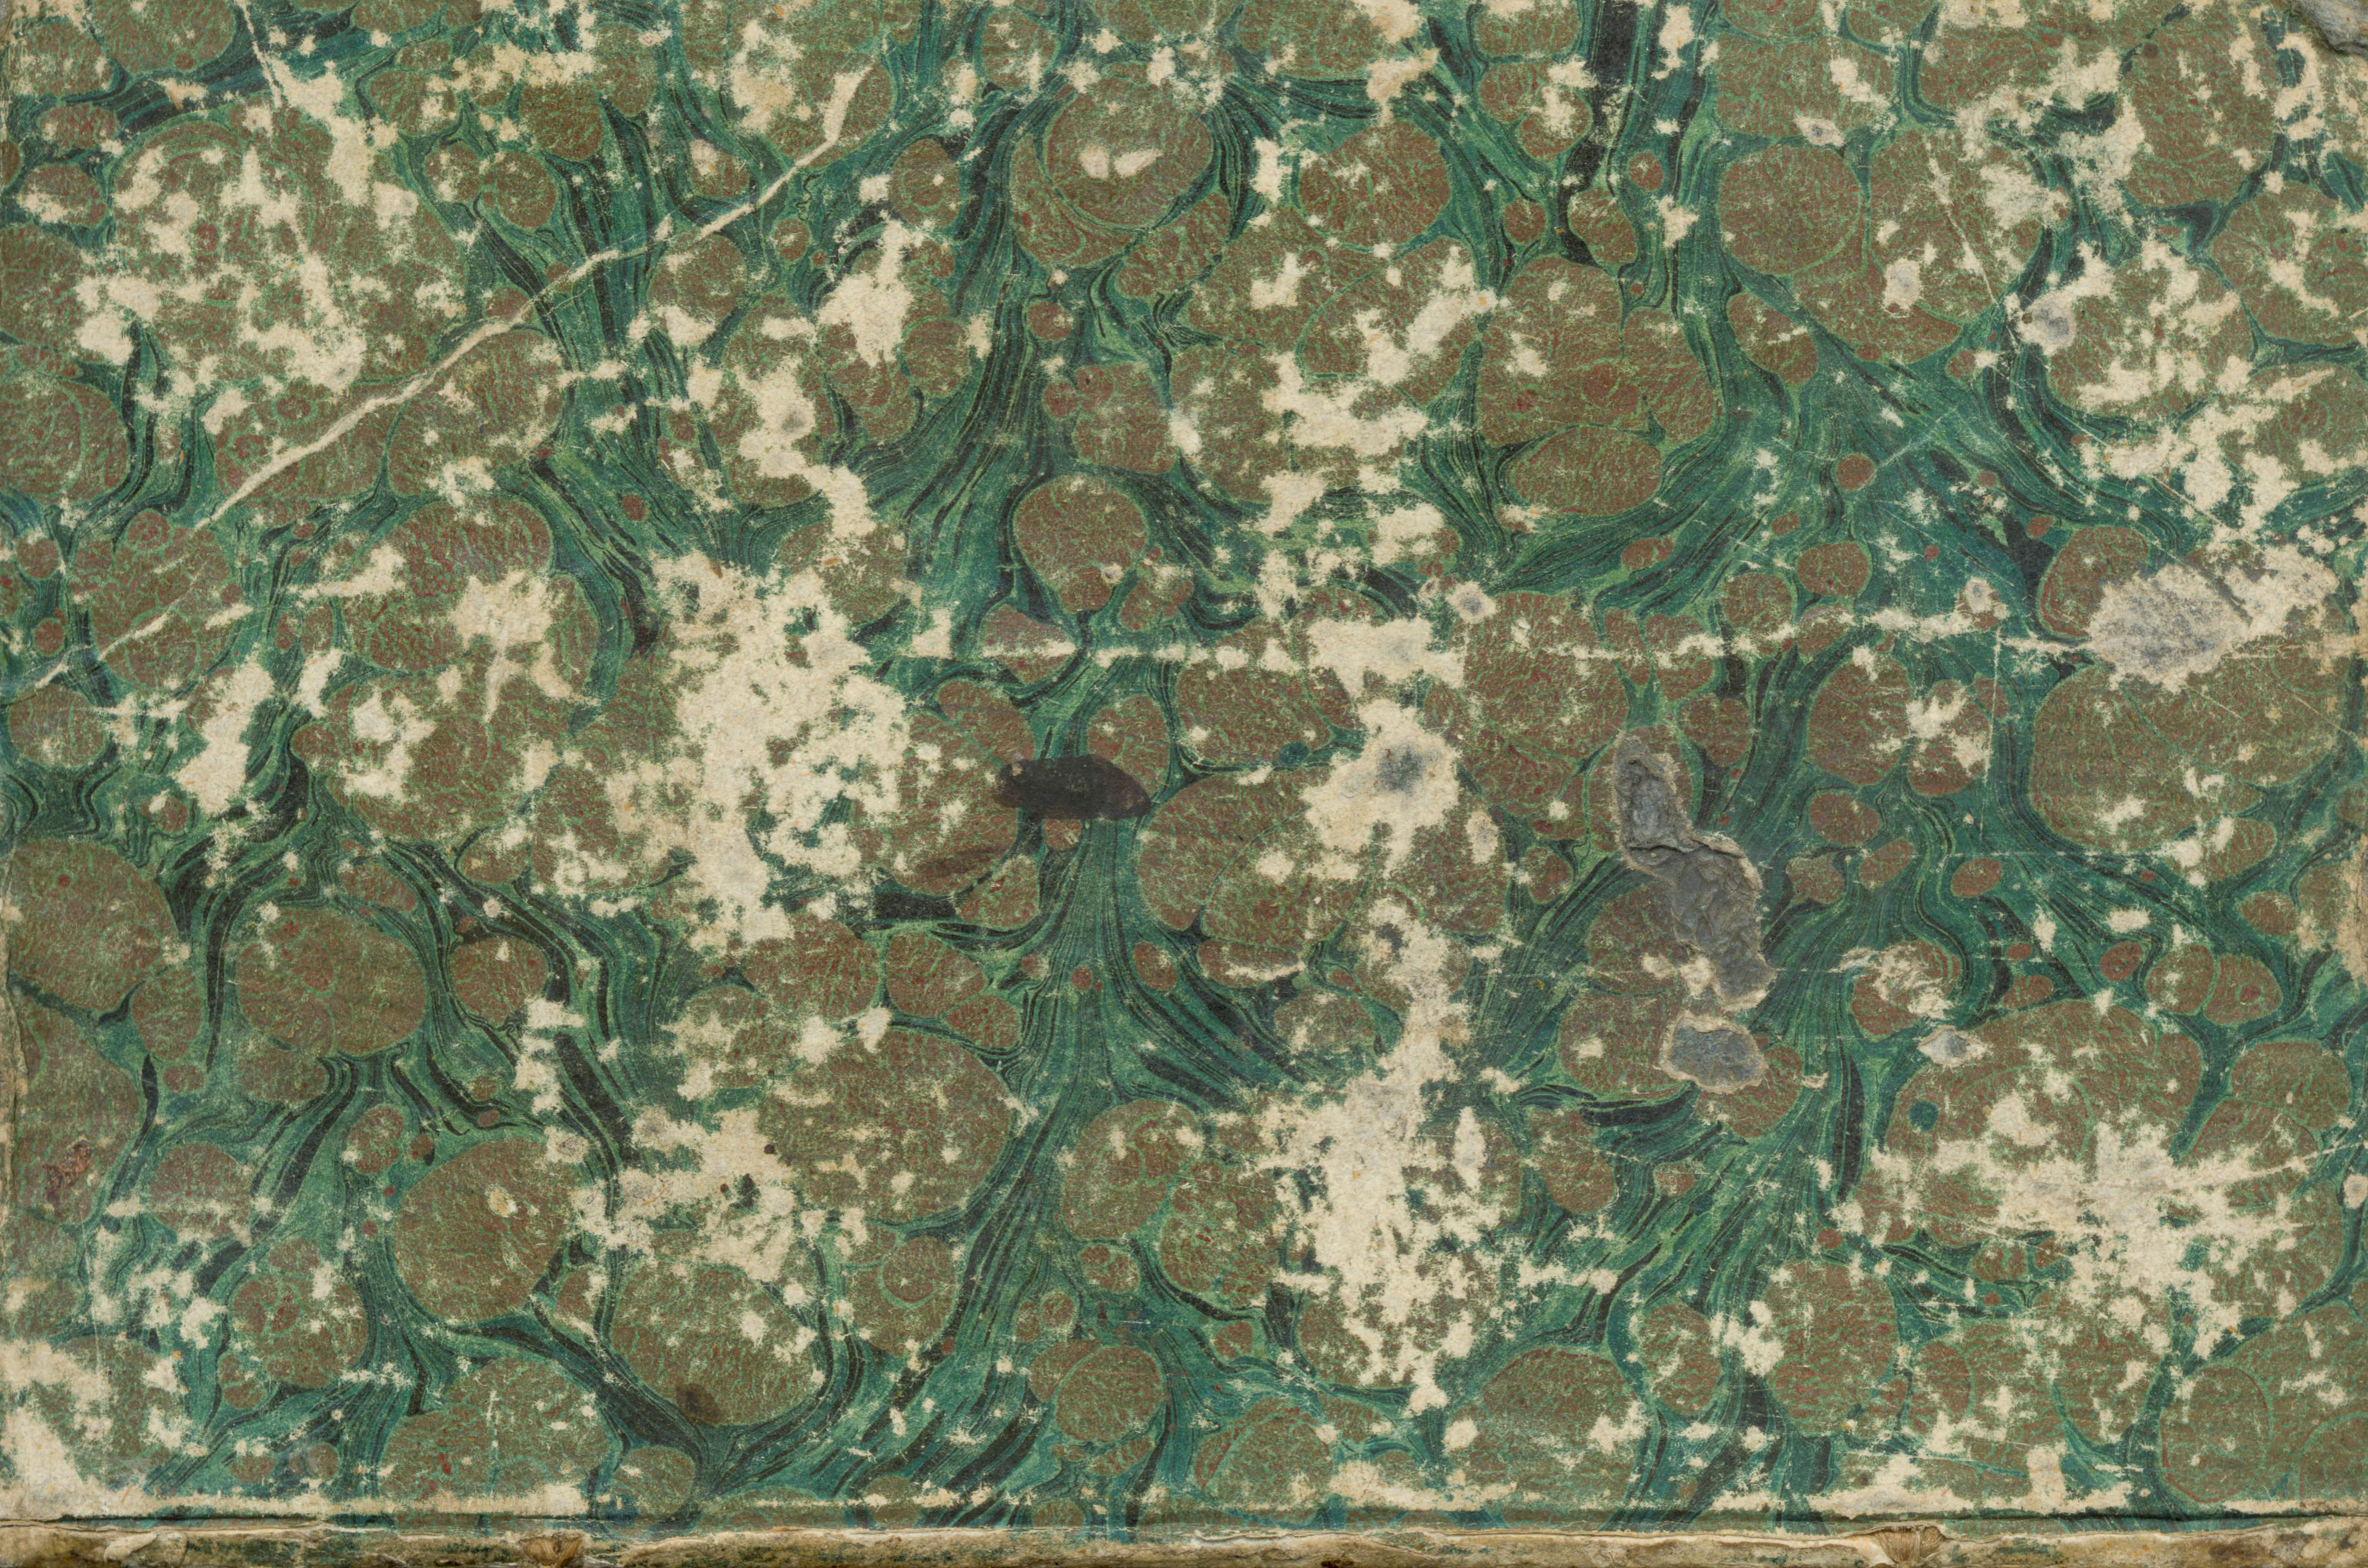 56 HQ vintage texture | Textures for photoshop free